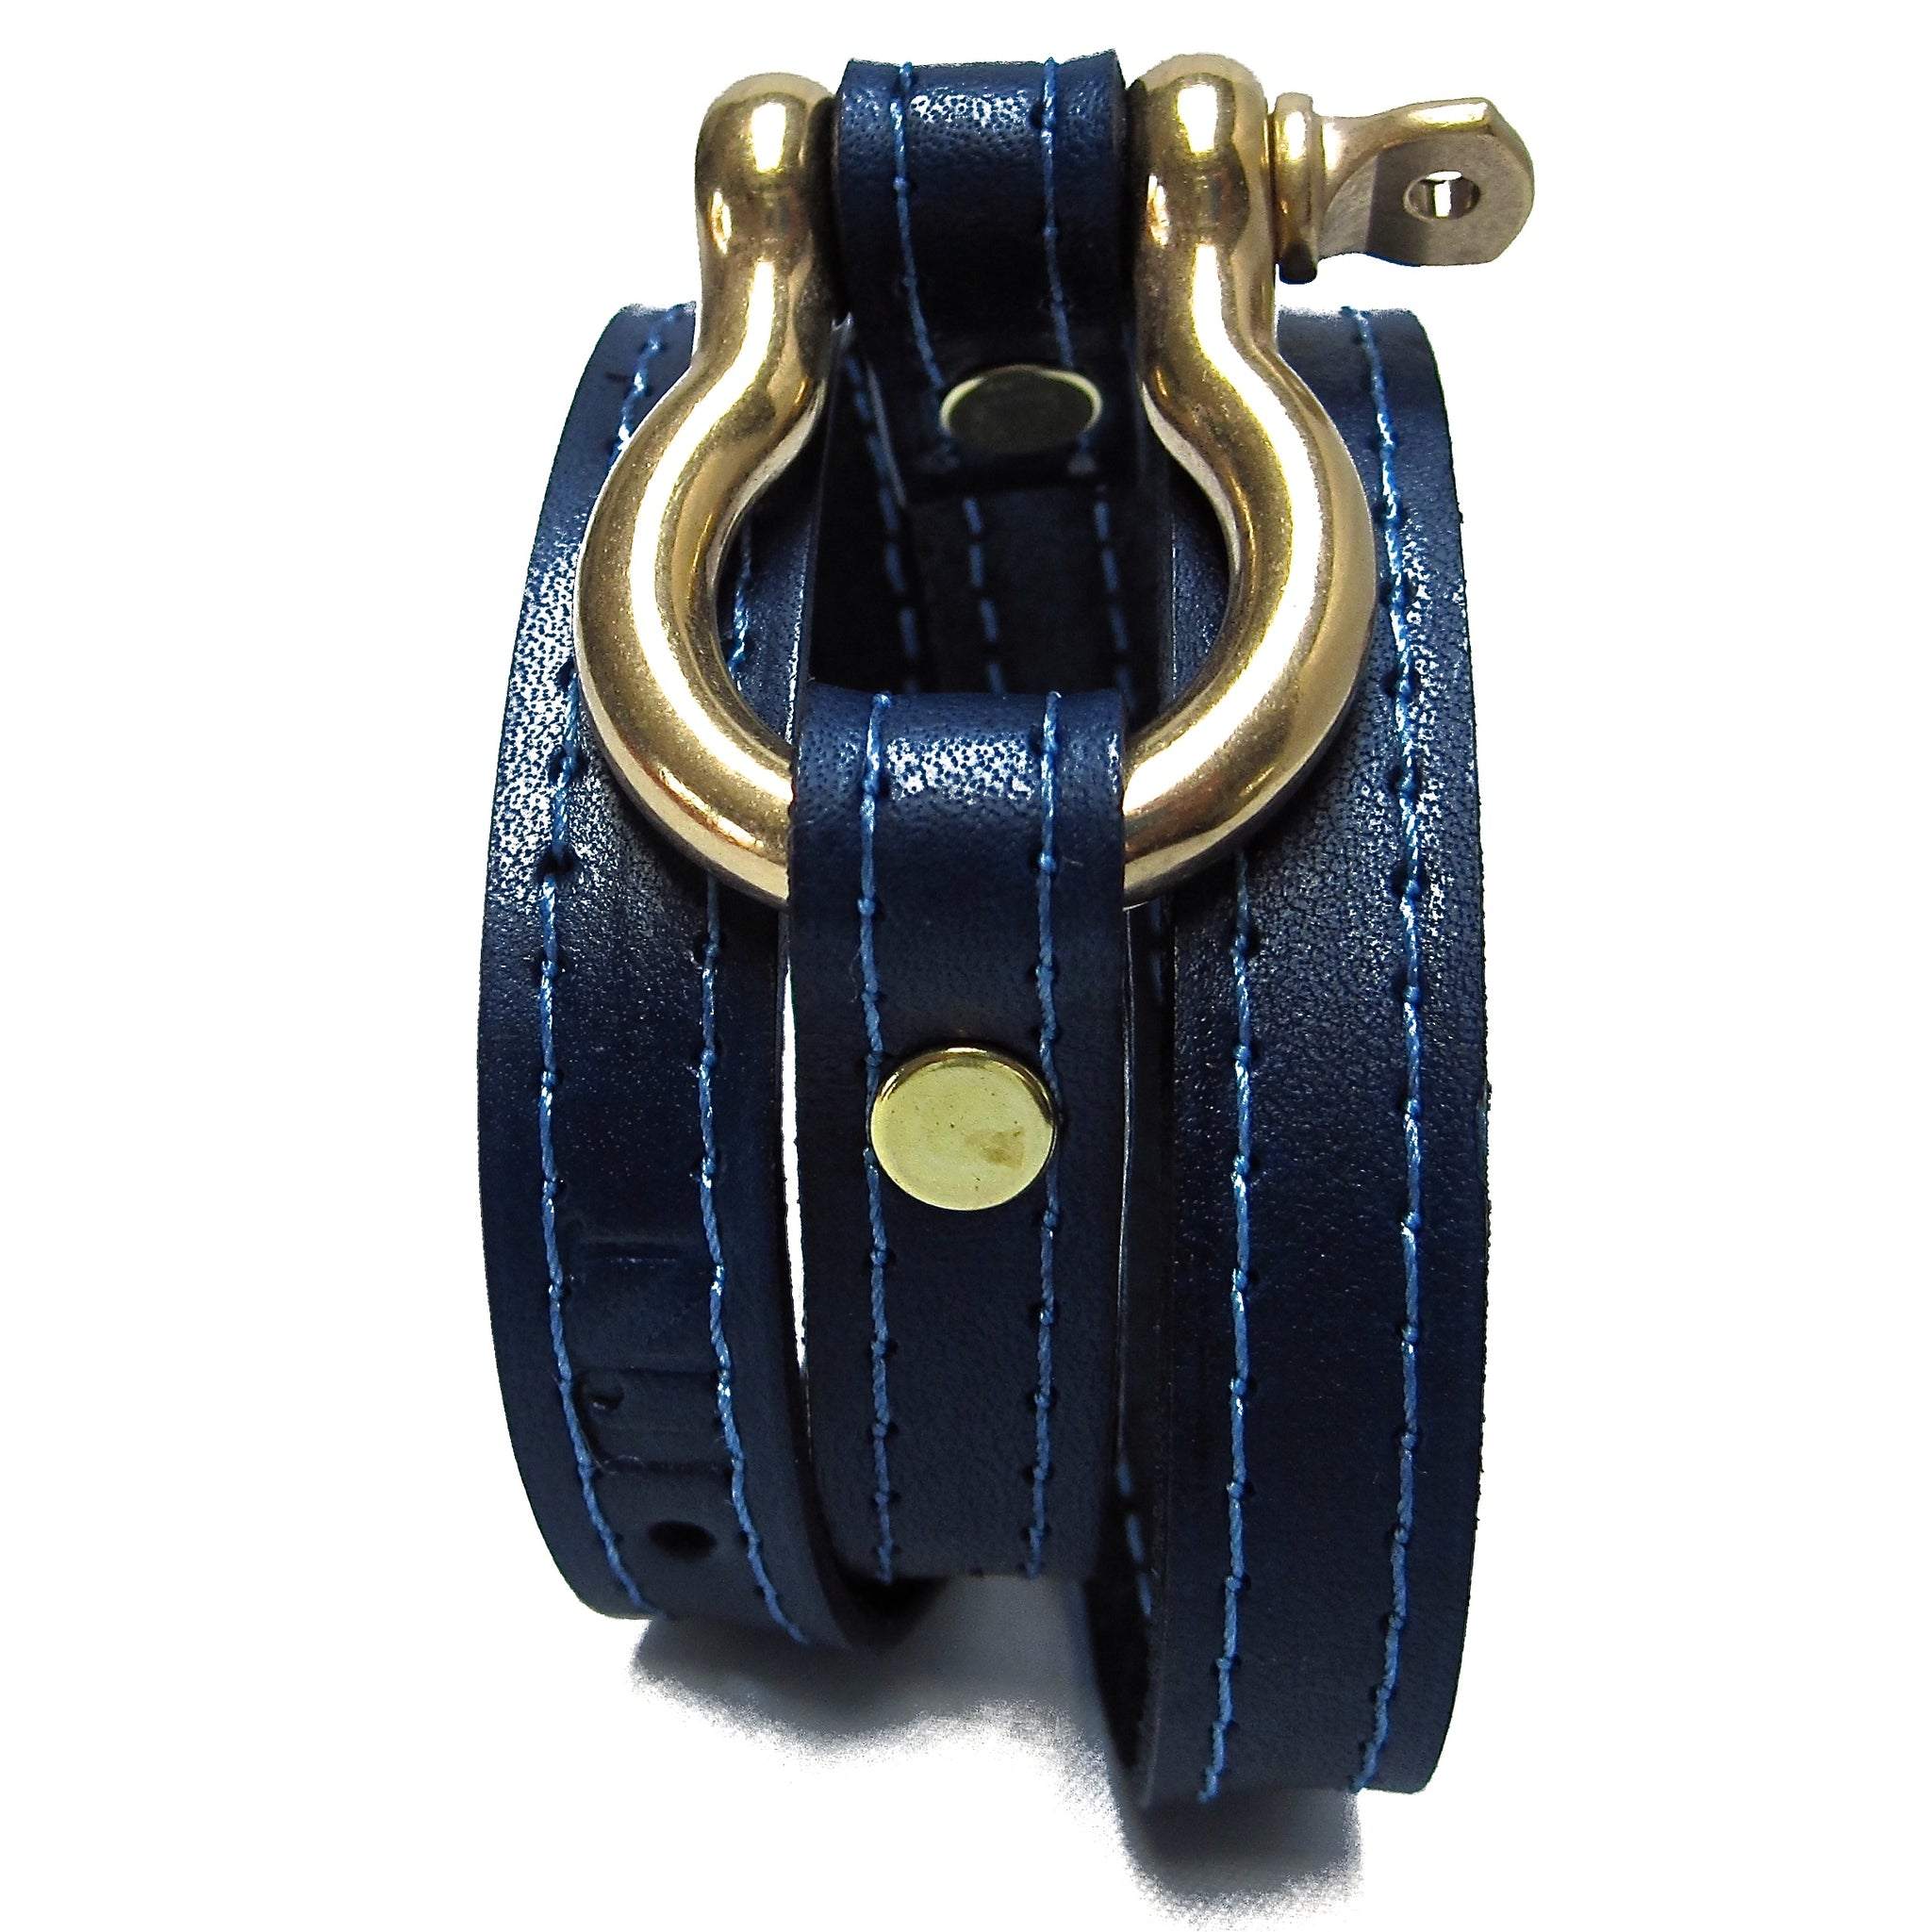 nyet jewelry Signature Gold Shackle Wraparound Bracelet Ultramarine by nyet jewelry